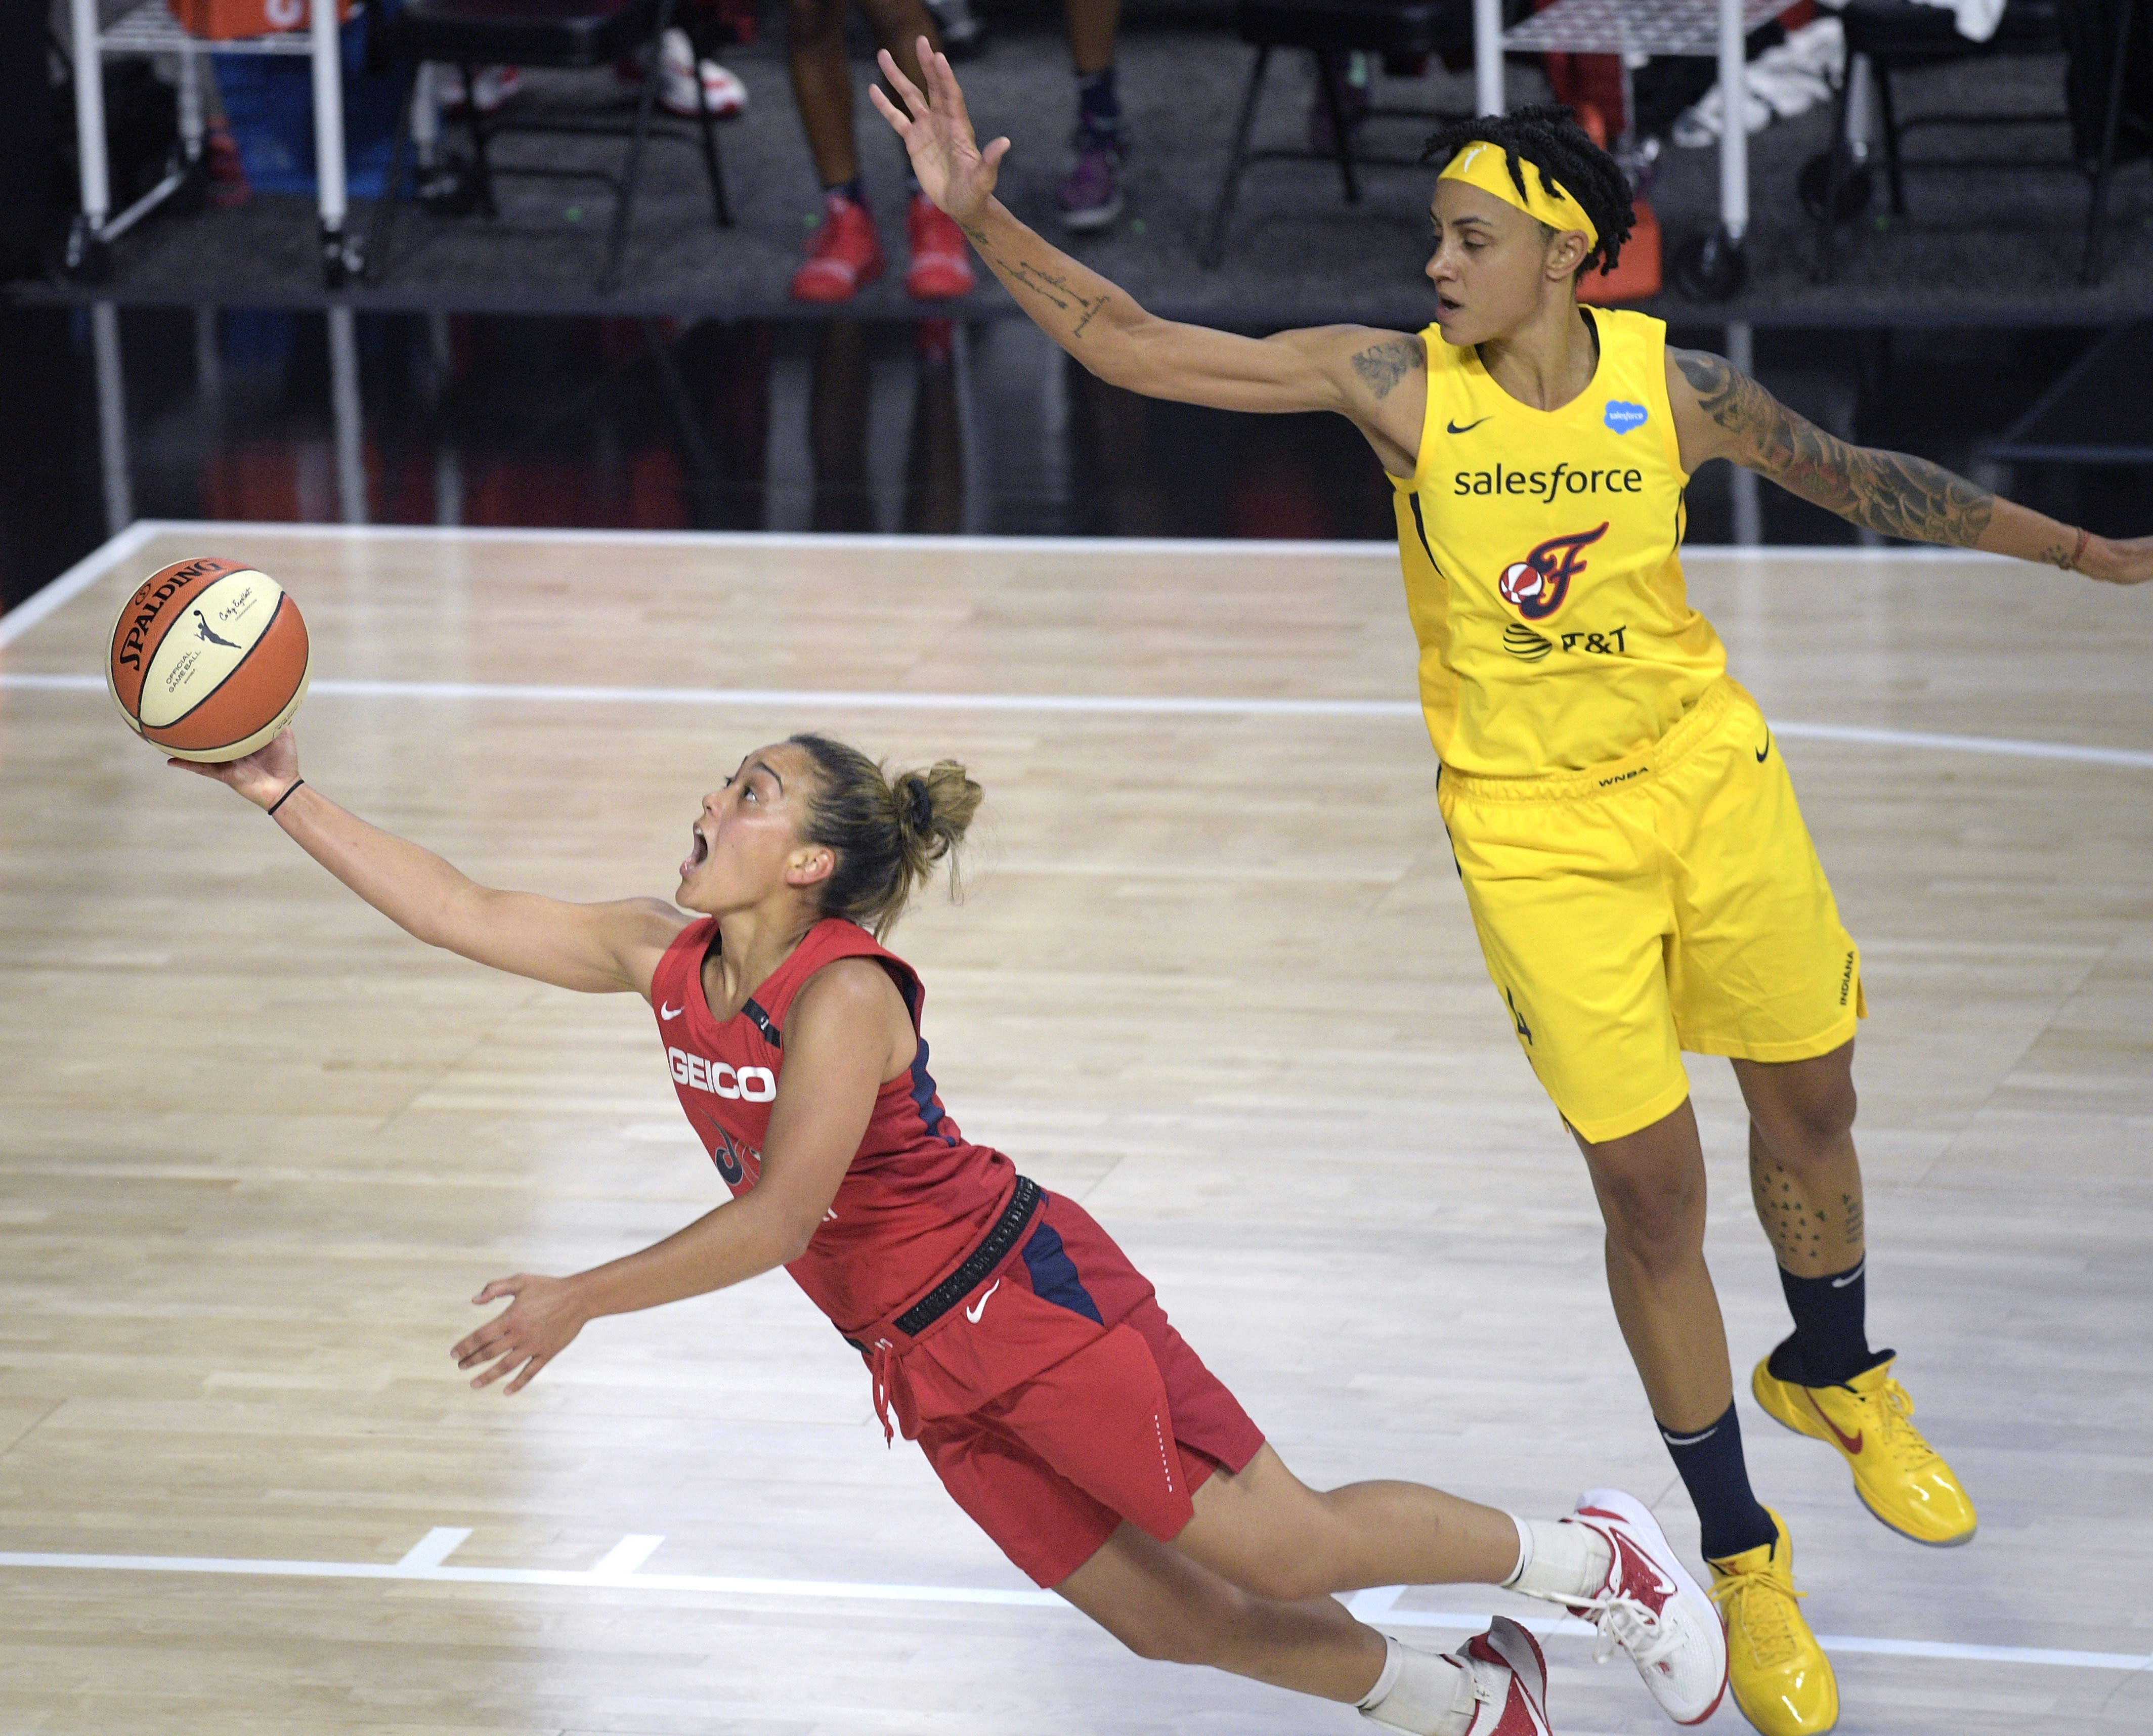 Washington Mystics guard Leilani Mitchell, left, makes a basket after being fouled by Indiana Fever forward Candice Dupree (4) during the first half of a WNBA basketball game, Saturday, July 25, 2020, in Ellenton, Fla. (AP Photo/Phelan M. Ebenhack)